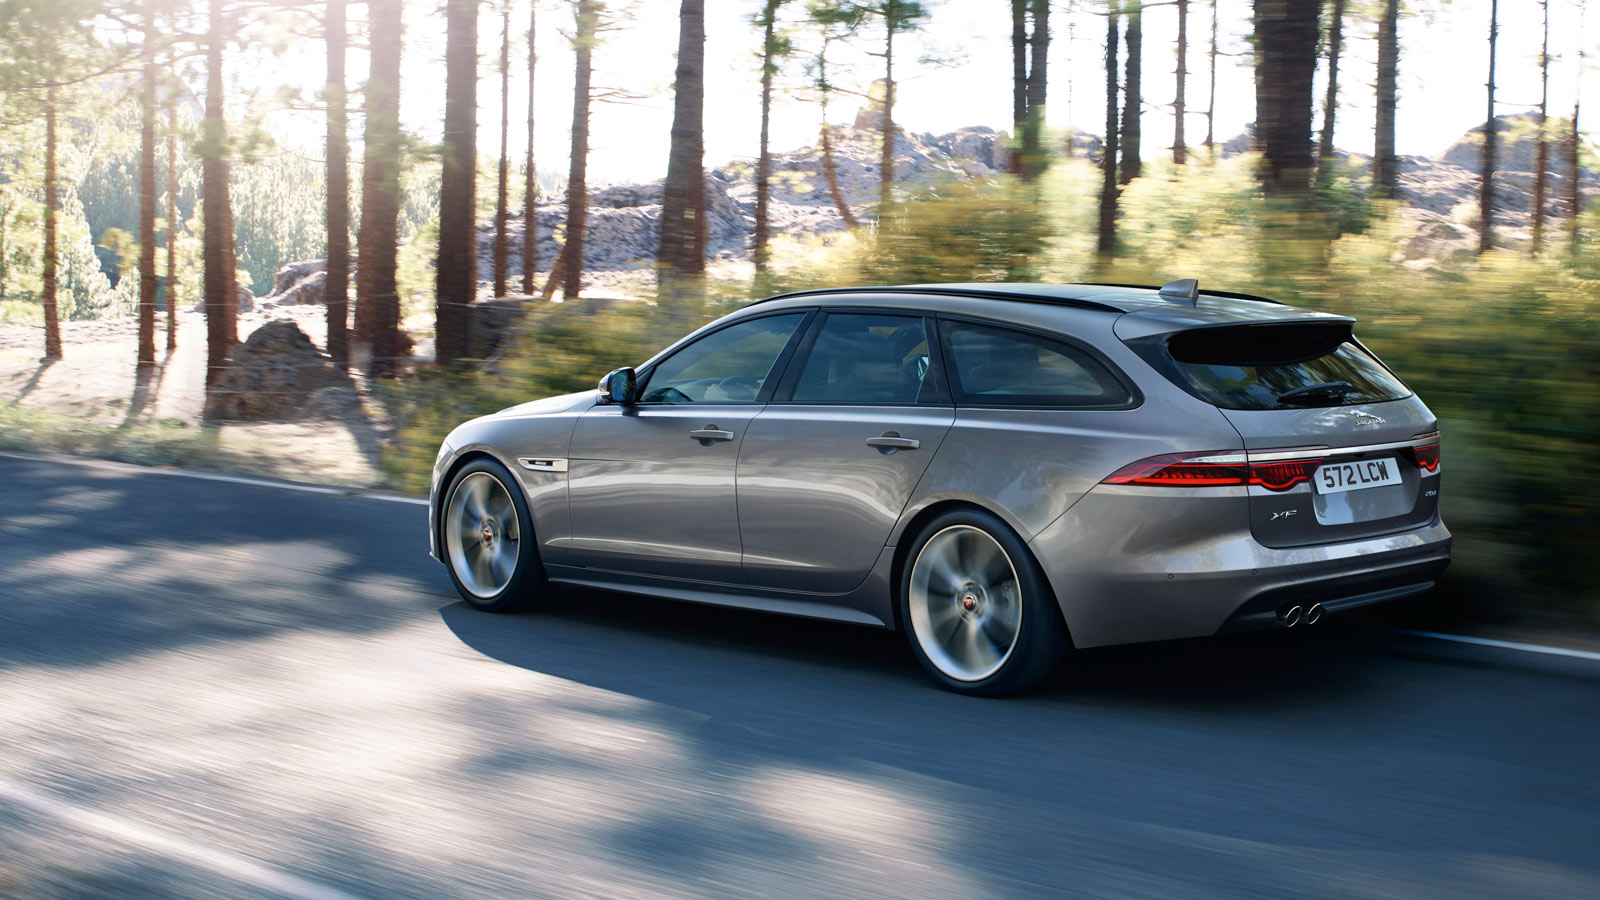 Grey Jaguar XF Driving By Trees